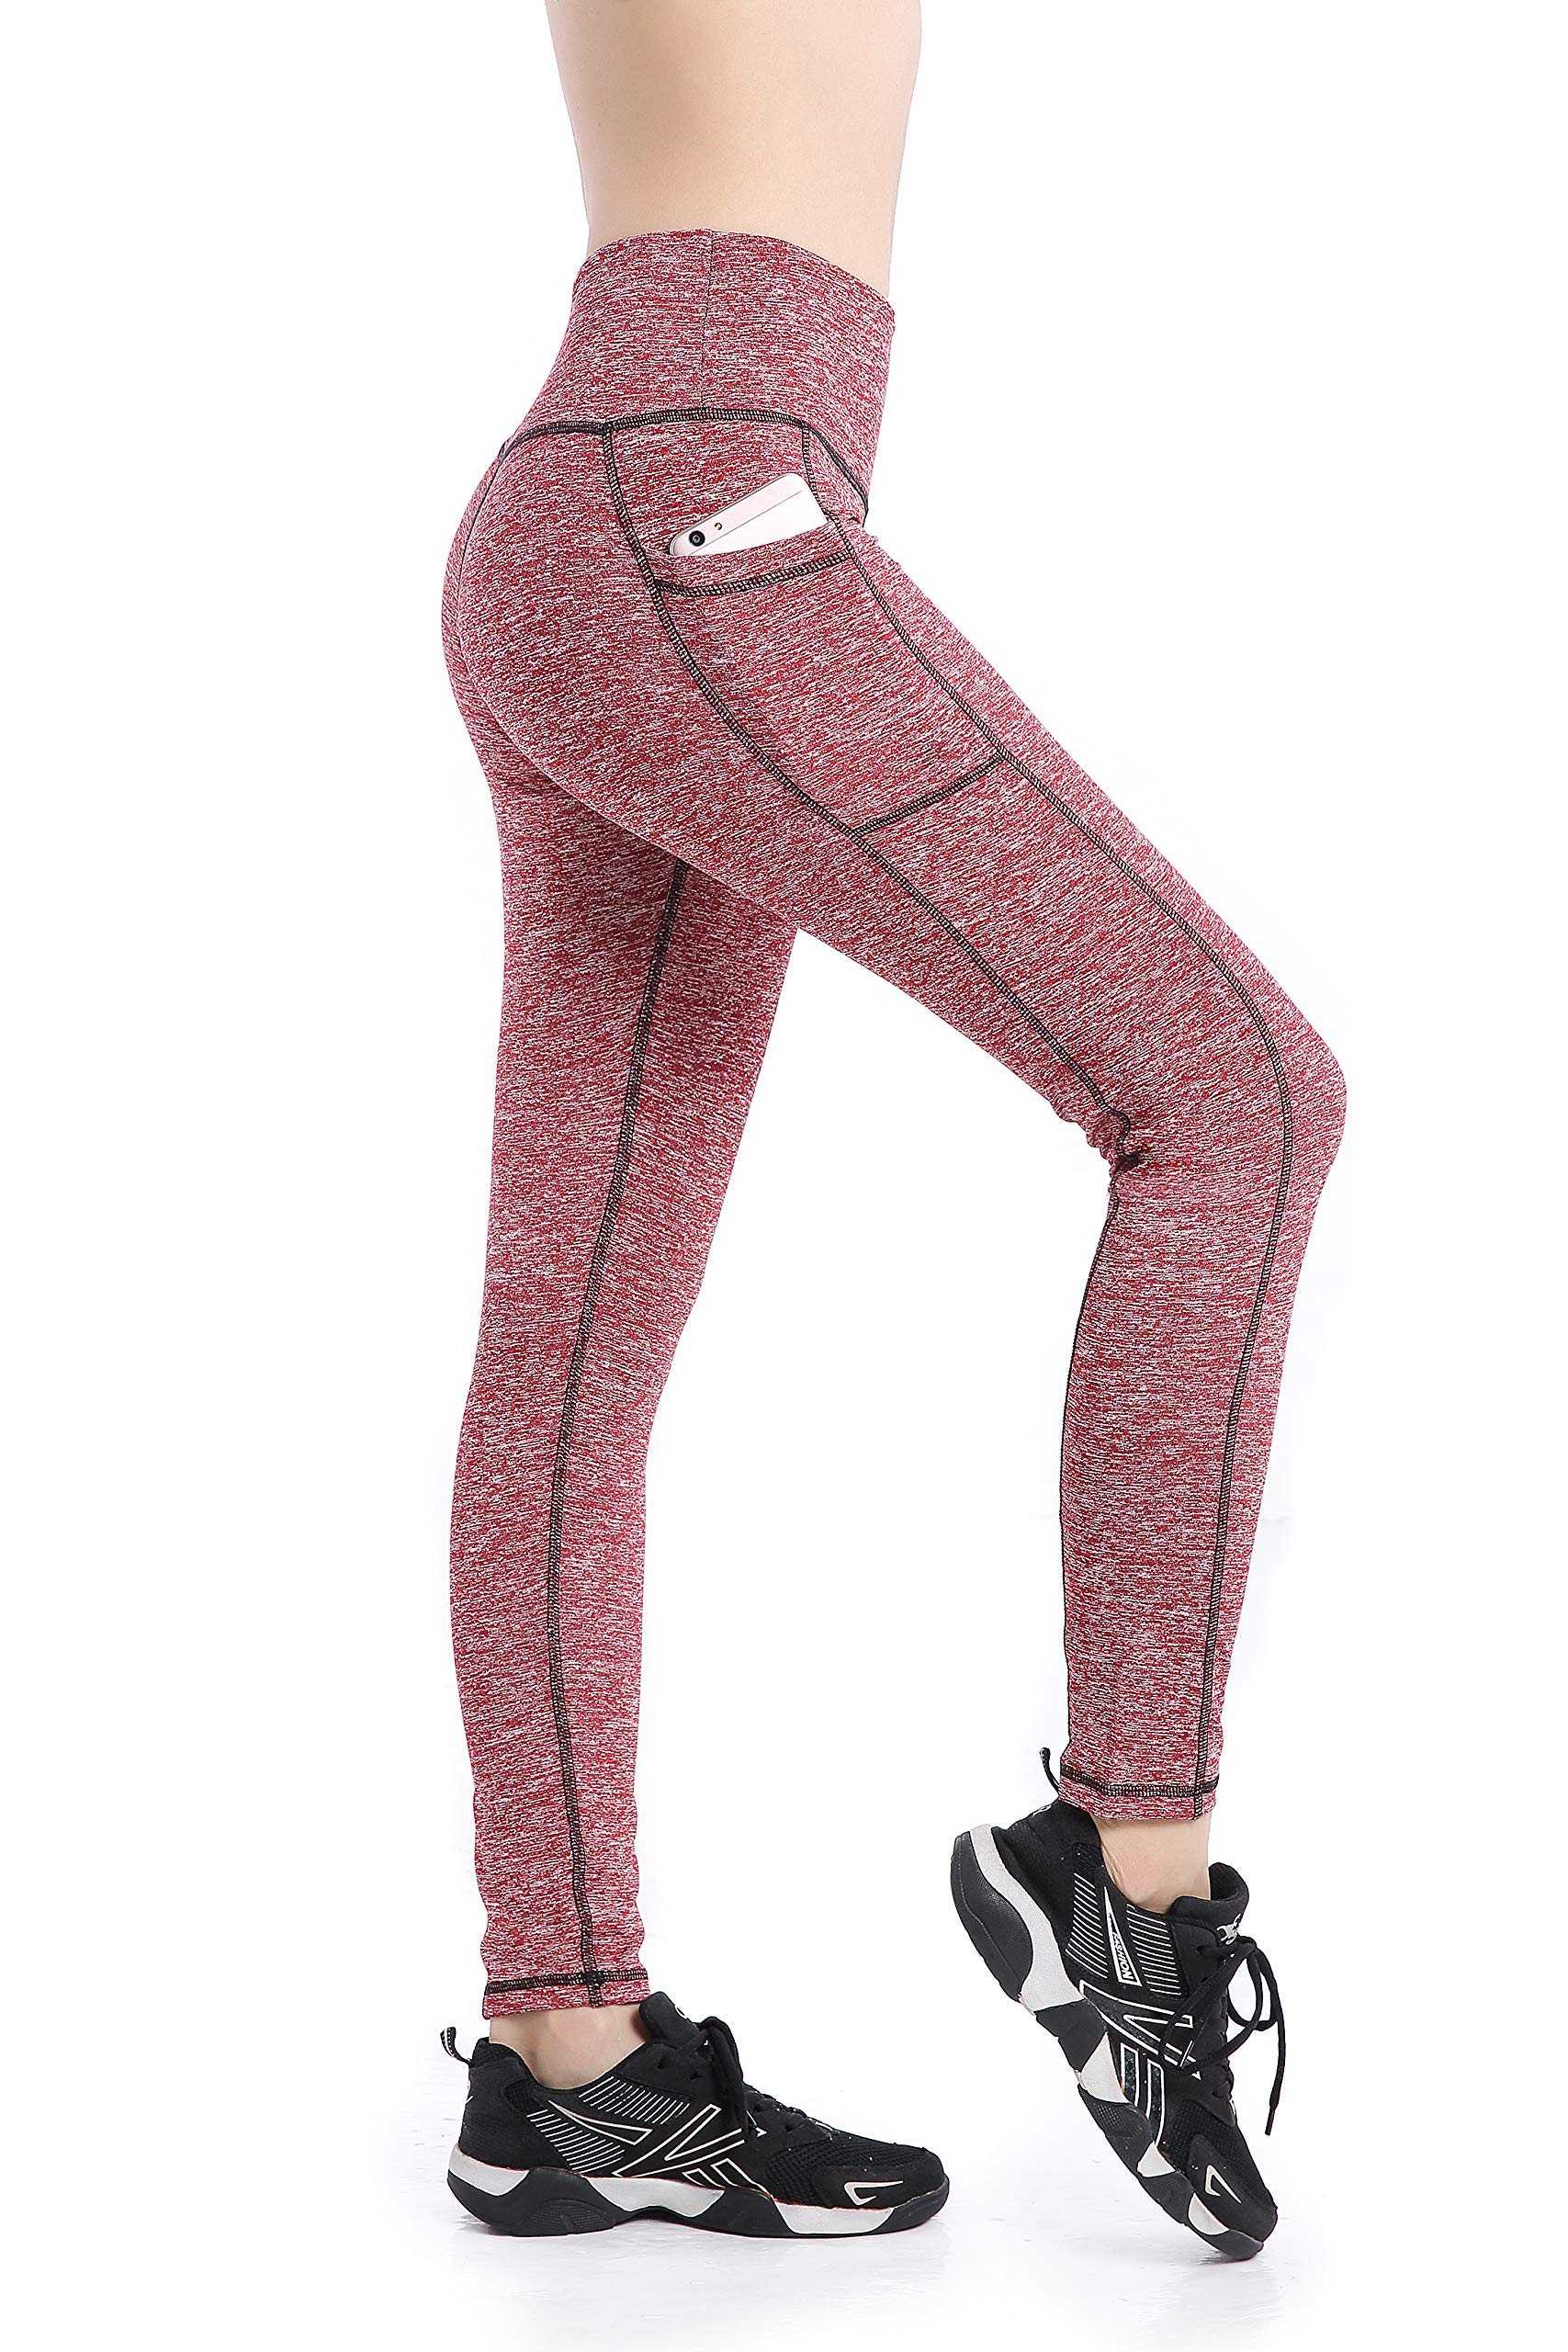 5f29bb347031b8 EAST HONG Women s Pocket Workout Leggings Running Yoga Pants Ankle Tights  product image